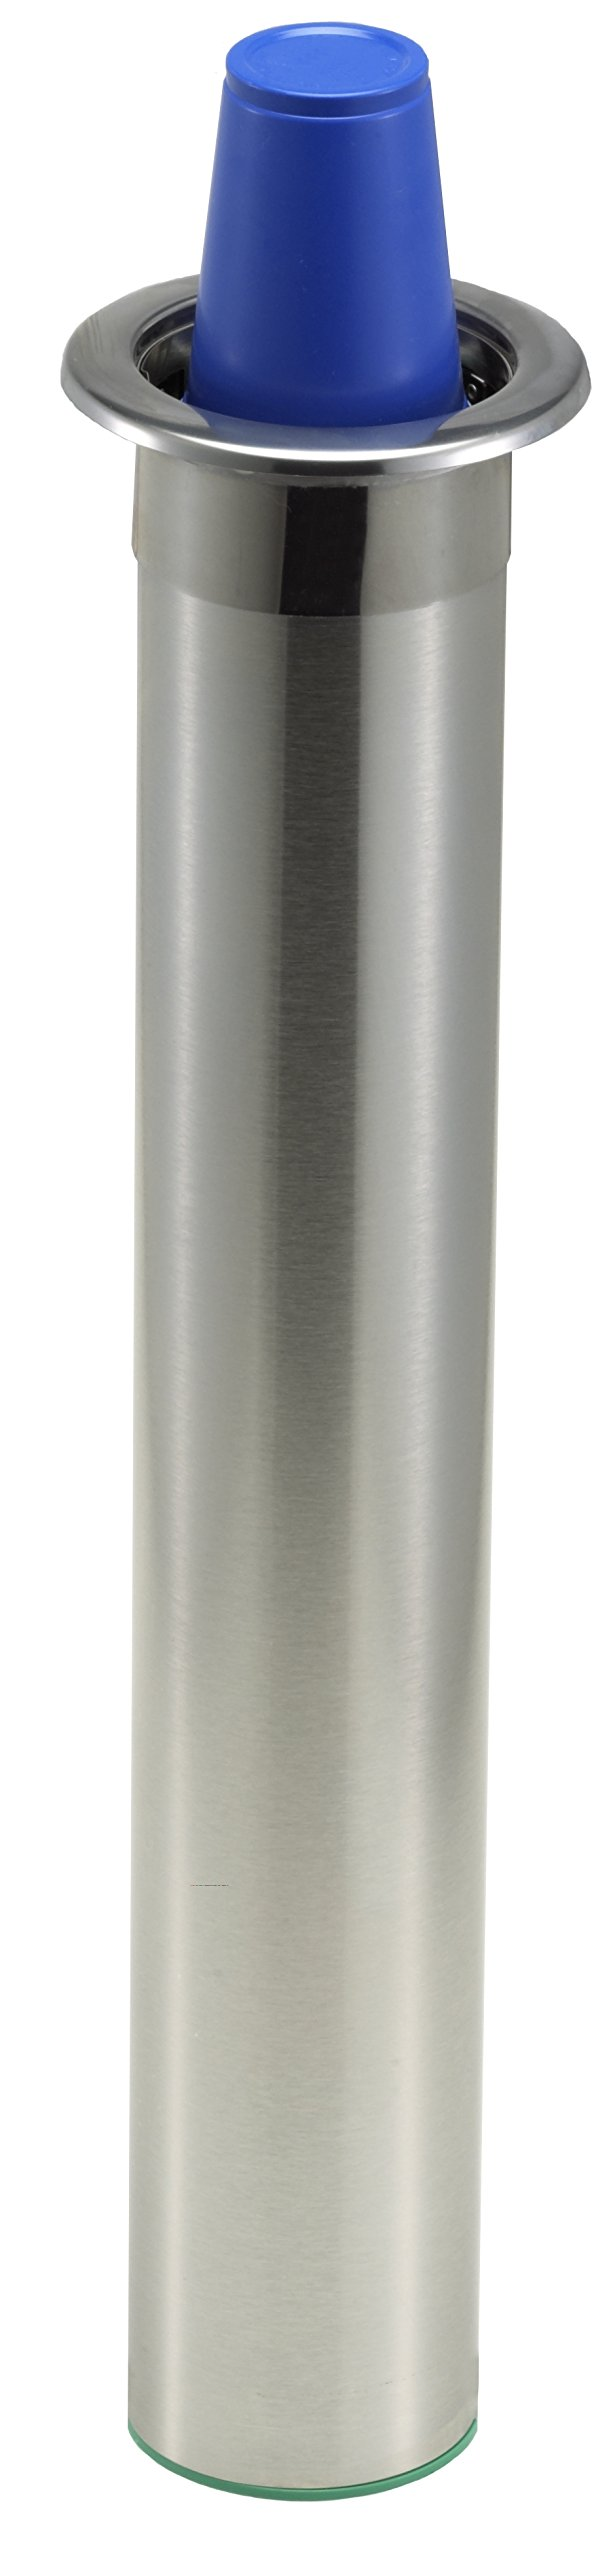 San Jamar C3200C Stainless Steel In-Counter Mount Beverage Horizontal Cup Dispenser, Fits 6oz to 10oz Cup Size, 2-7/32'' to 3-3/16'' Rim, 23-1/2'' Tube Length